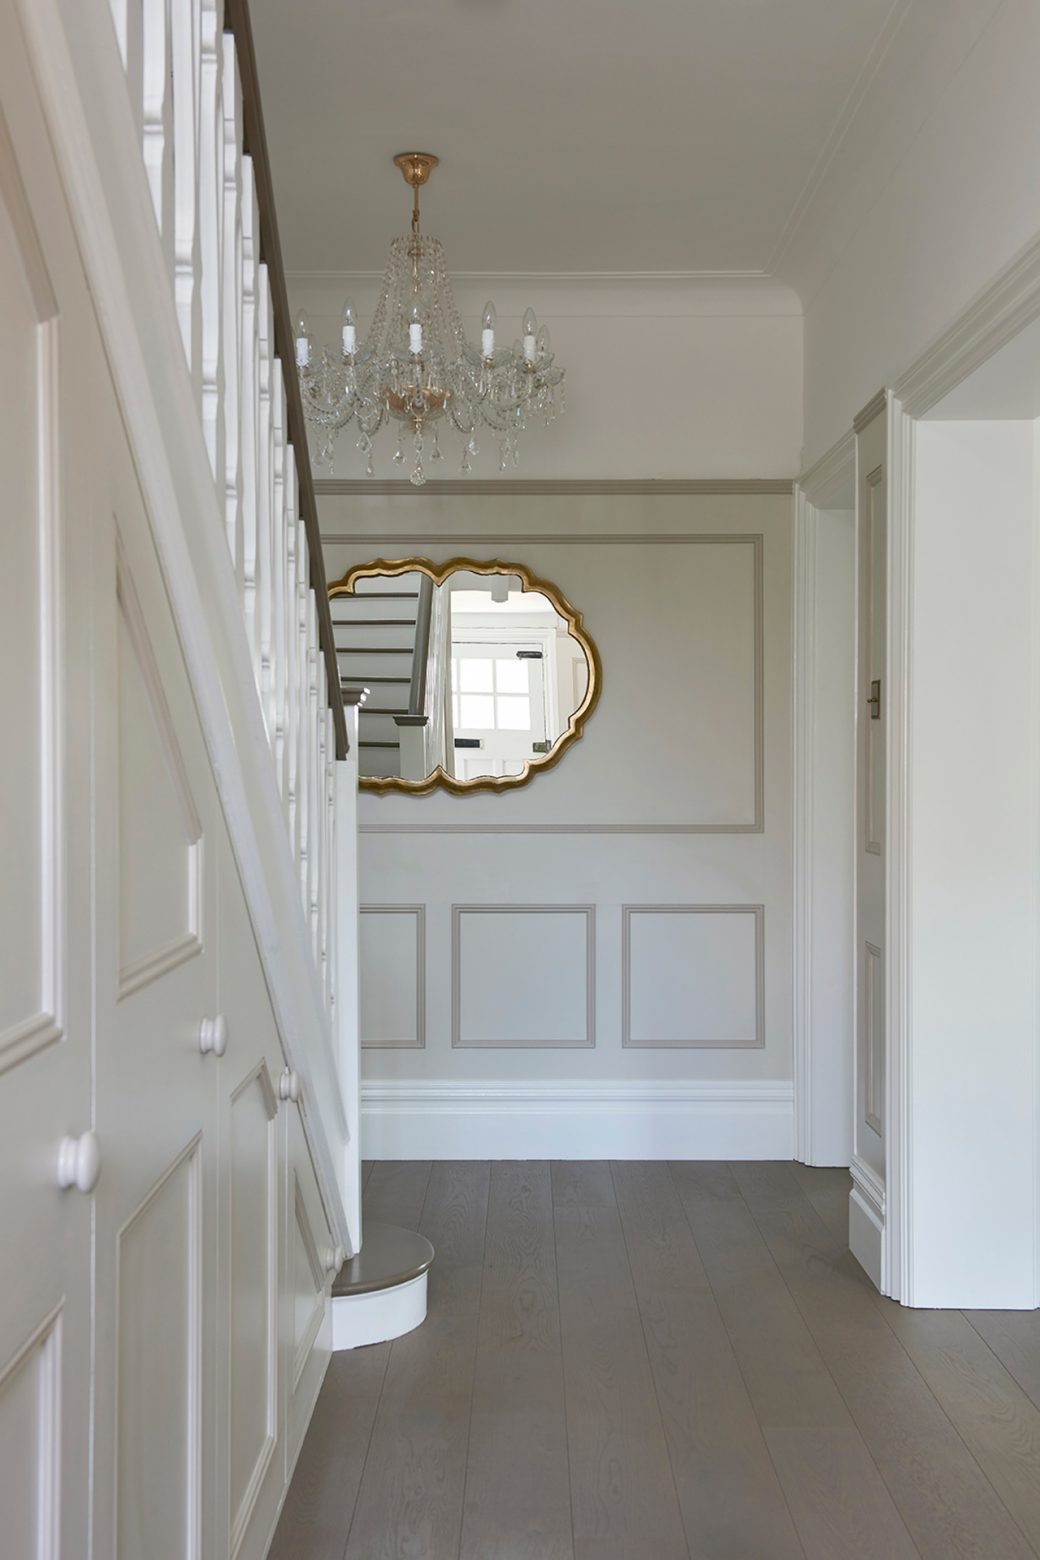 A grand entrance hall with chandelier and mirror